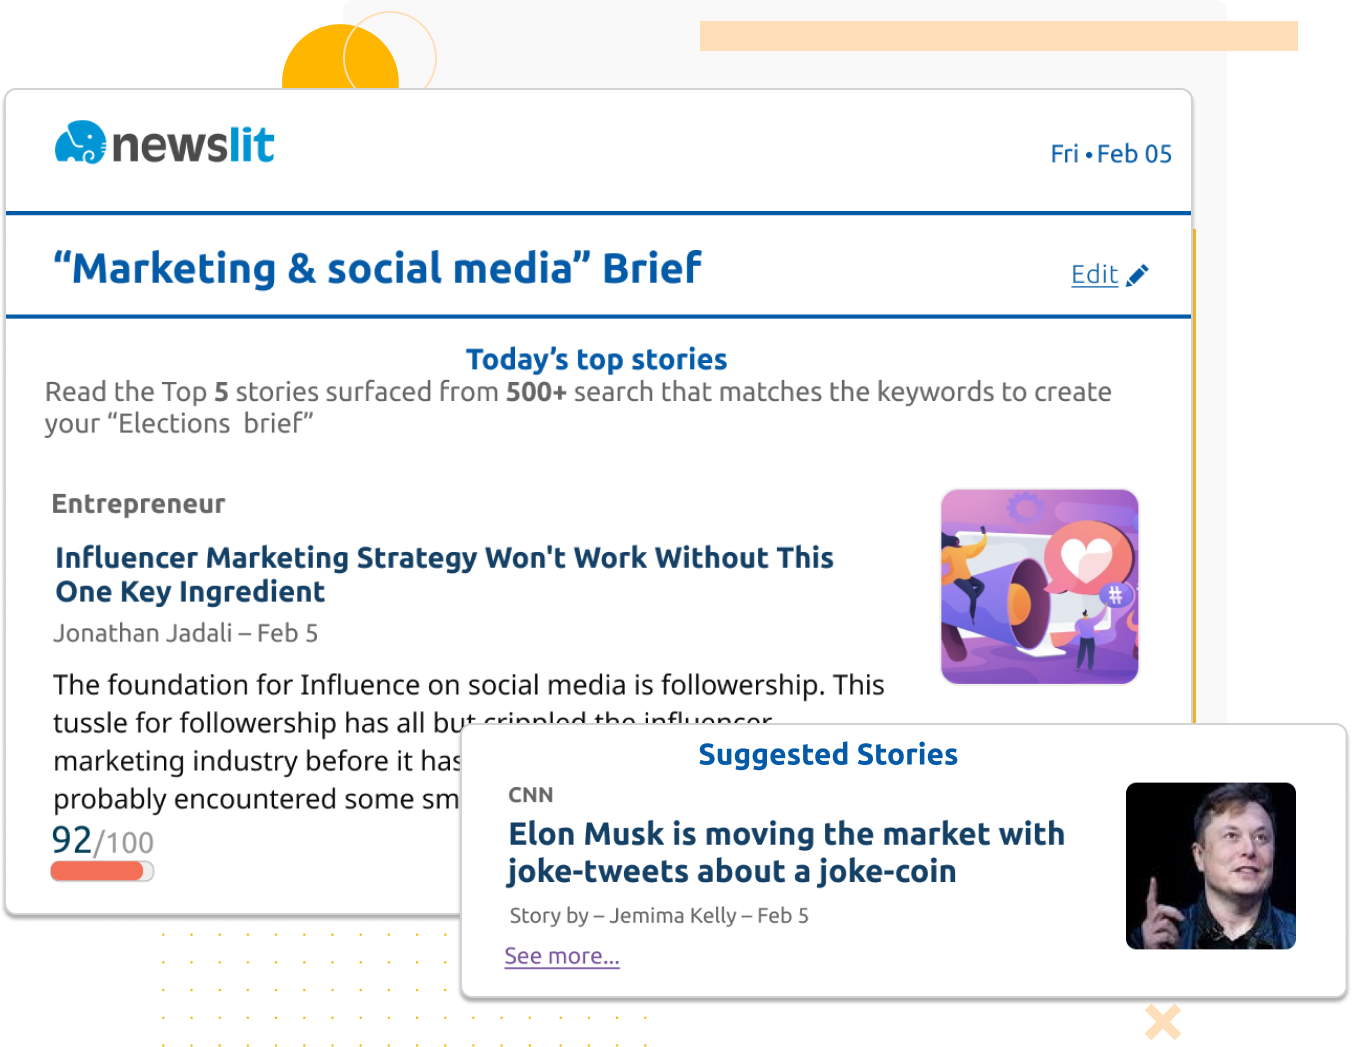 Get daily personalized news-briefings via email with the latest news about your targeted topic - image